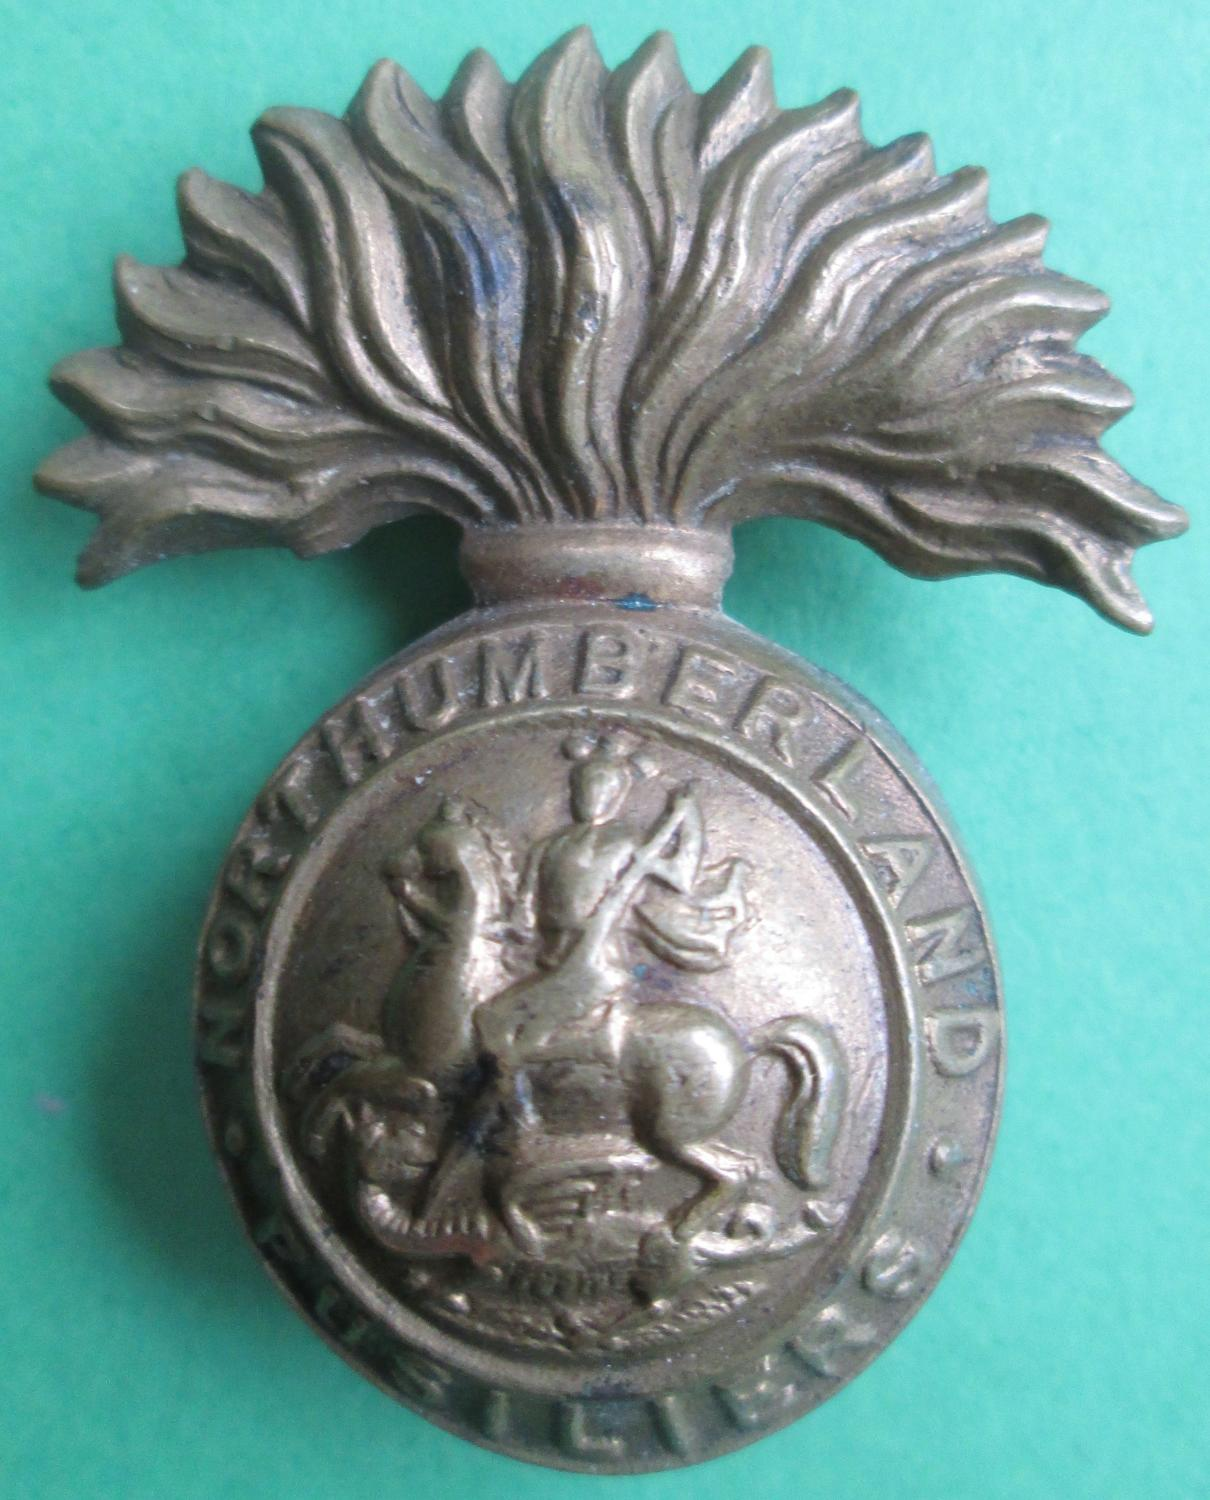 A NORTHUMBERLAND FUSILIERS BADGE